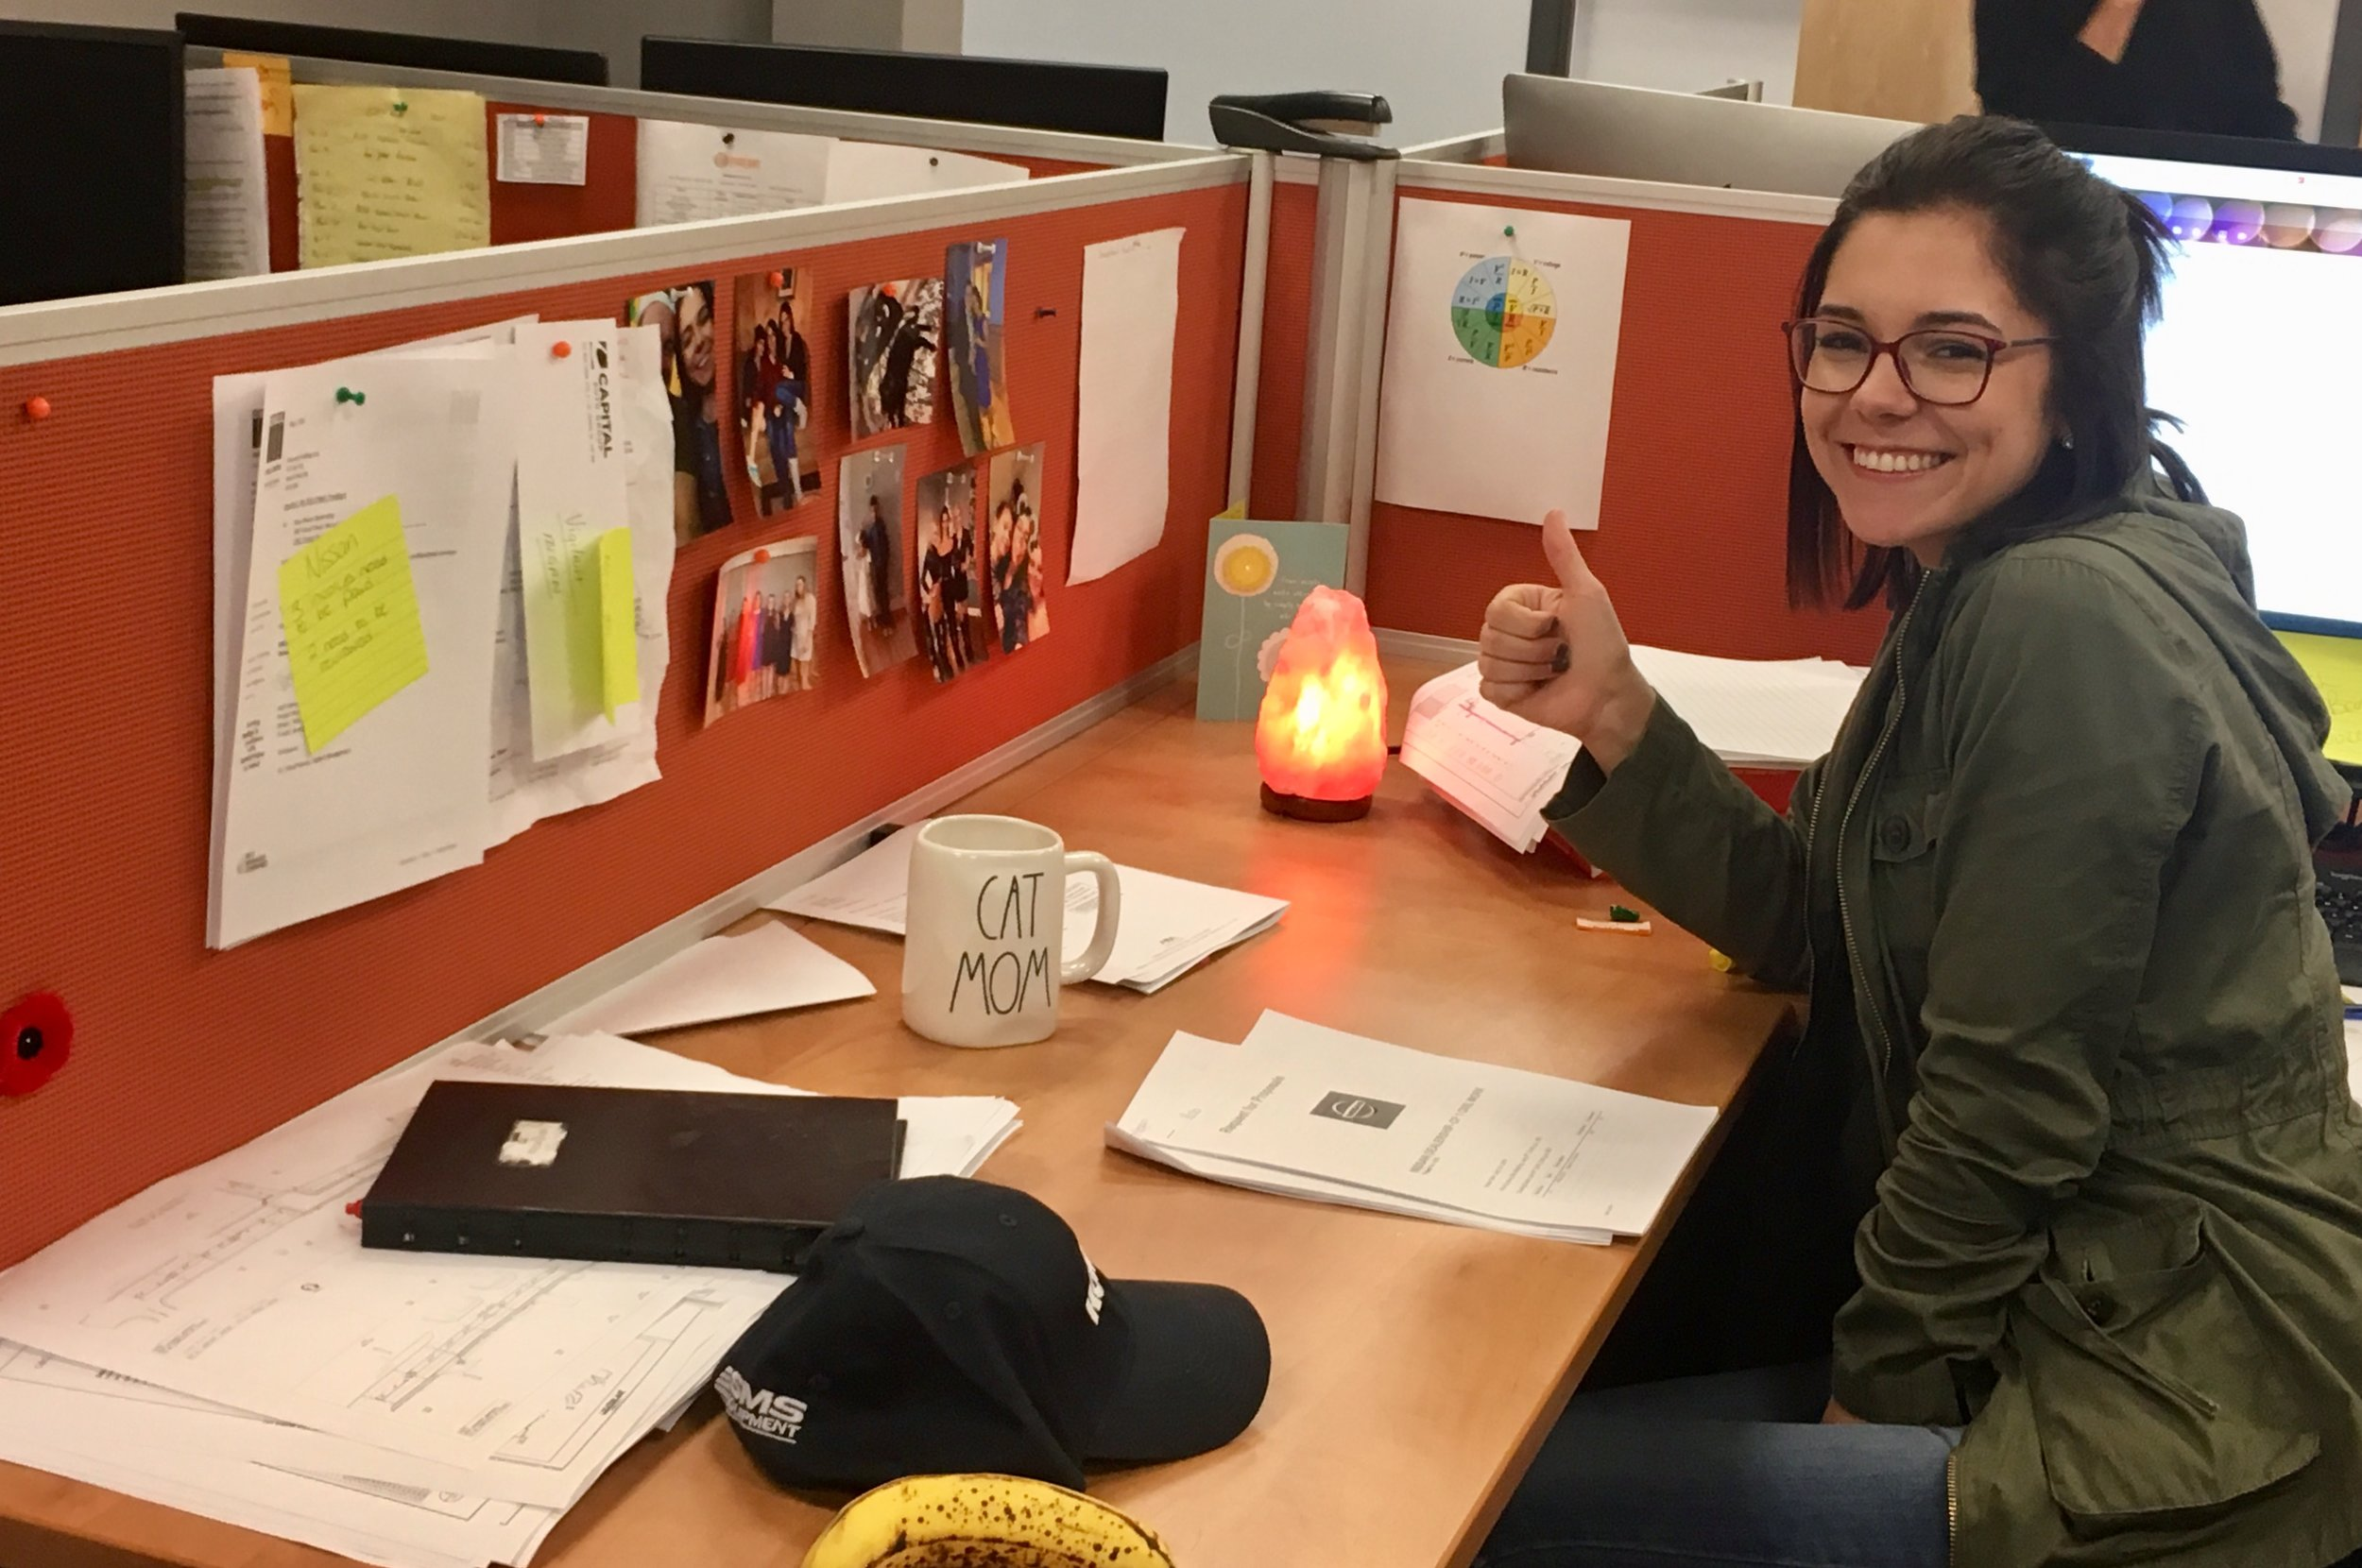 Megan with her Salt lamp, CAT MOM mug and photos on her cubical